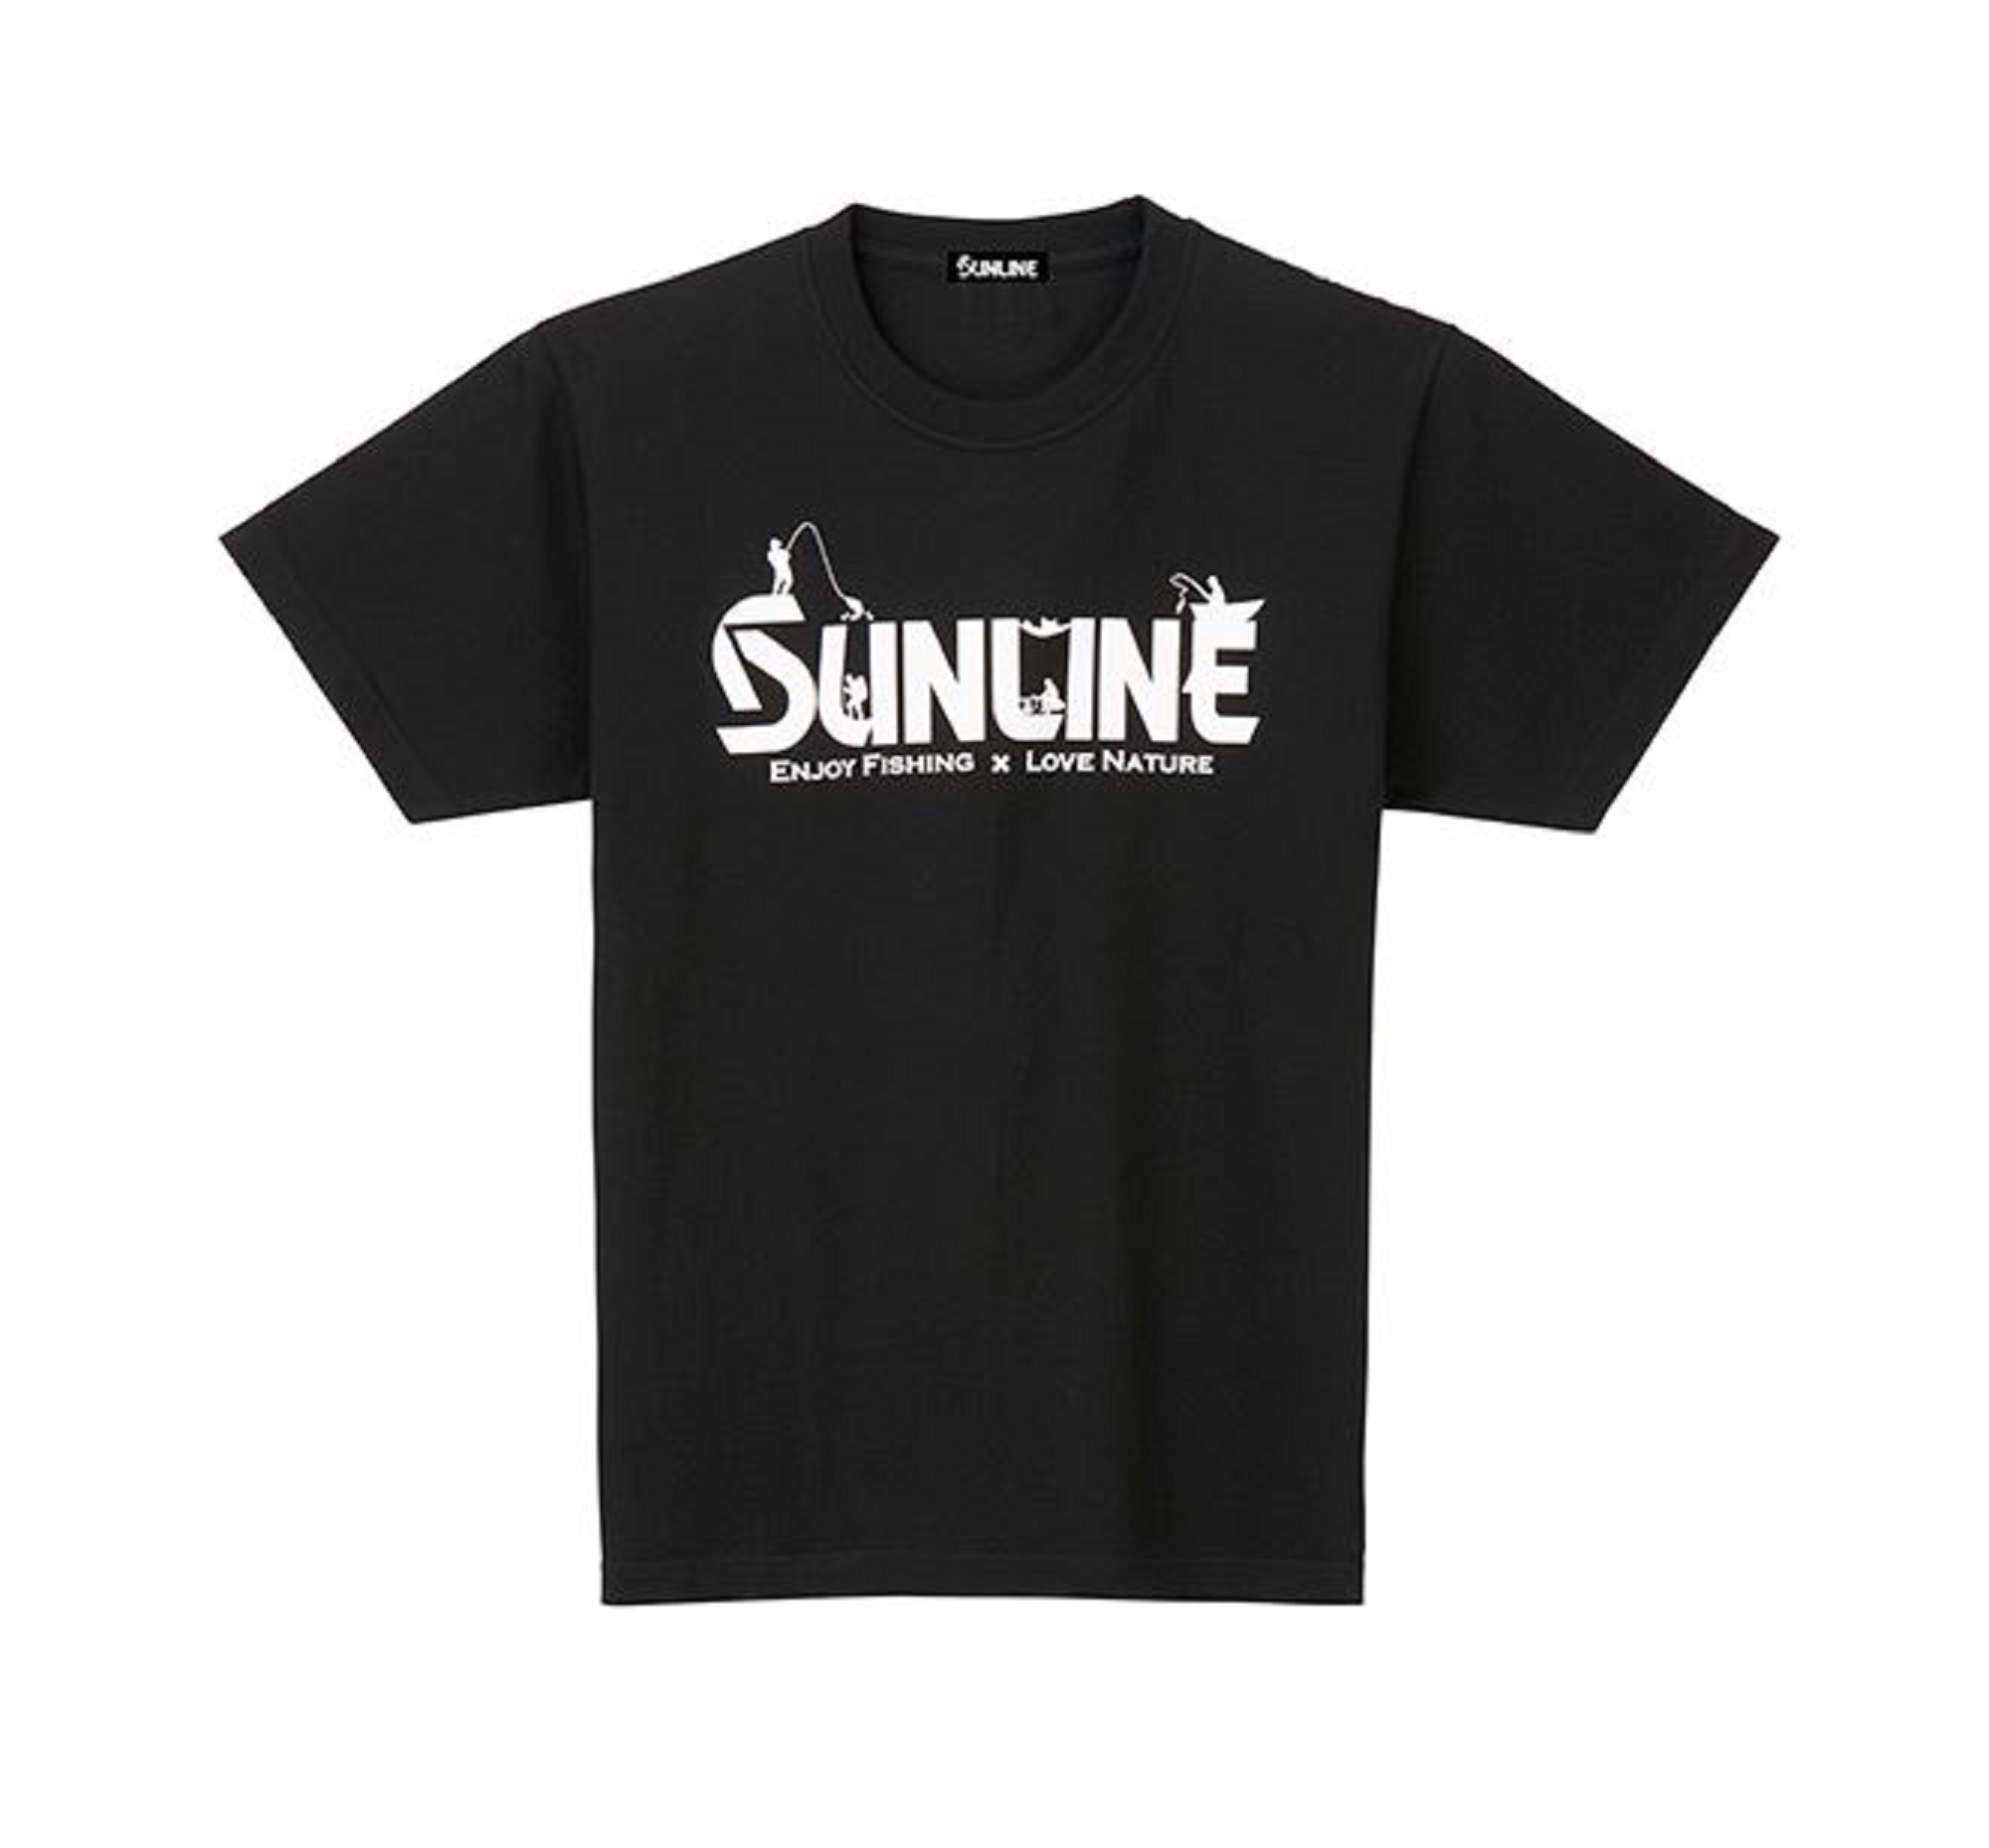 Sunline SUW-15020T T-Shirt Cotton Short Sleeve Black Size L (3040)